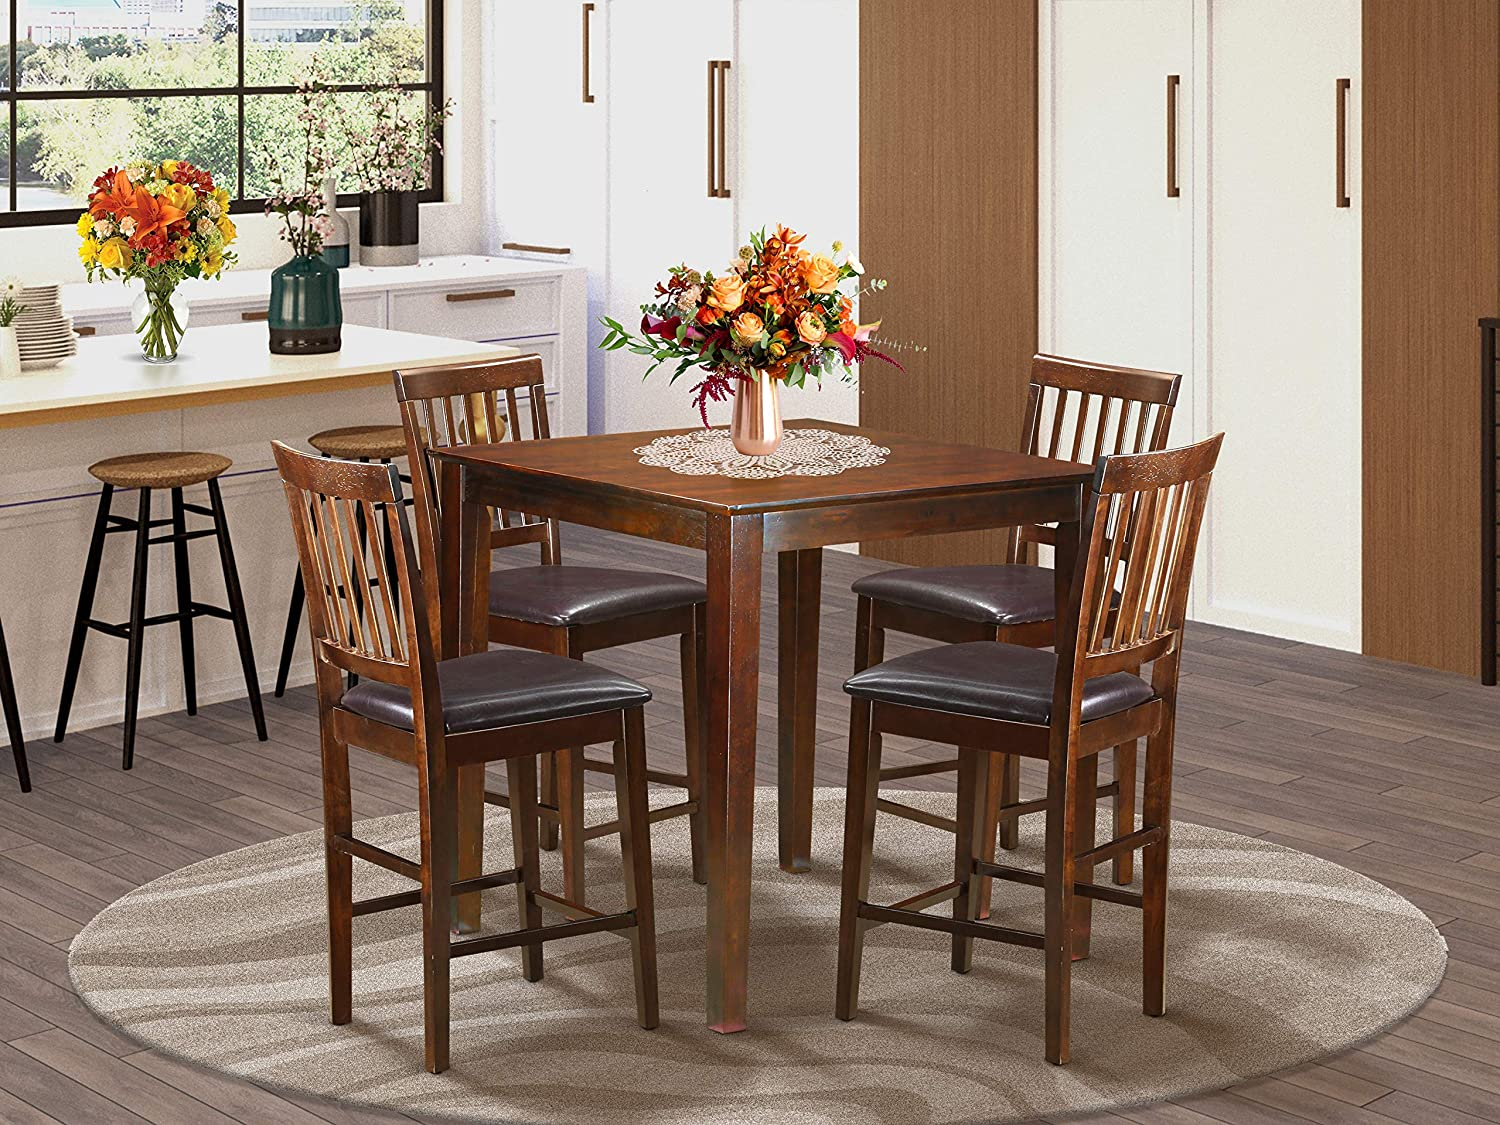 Amazon Com 5 Pc Counter Height Table Square Gathering Table And 4 Stools Table Chair Sets